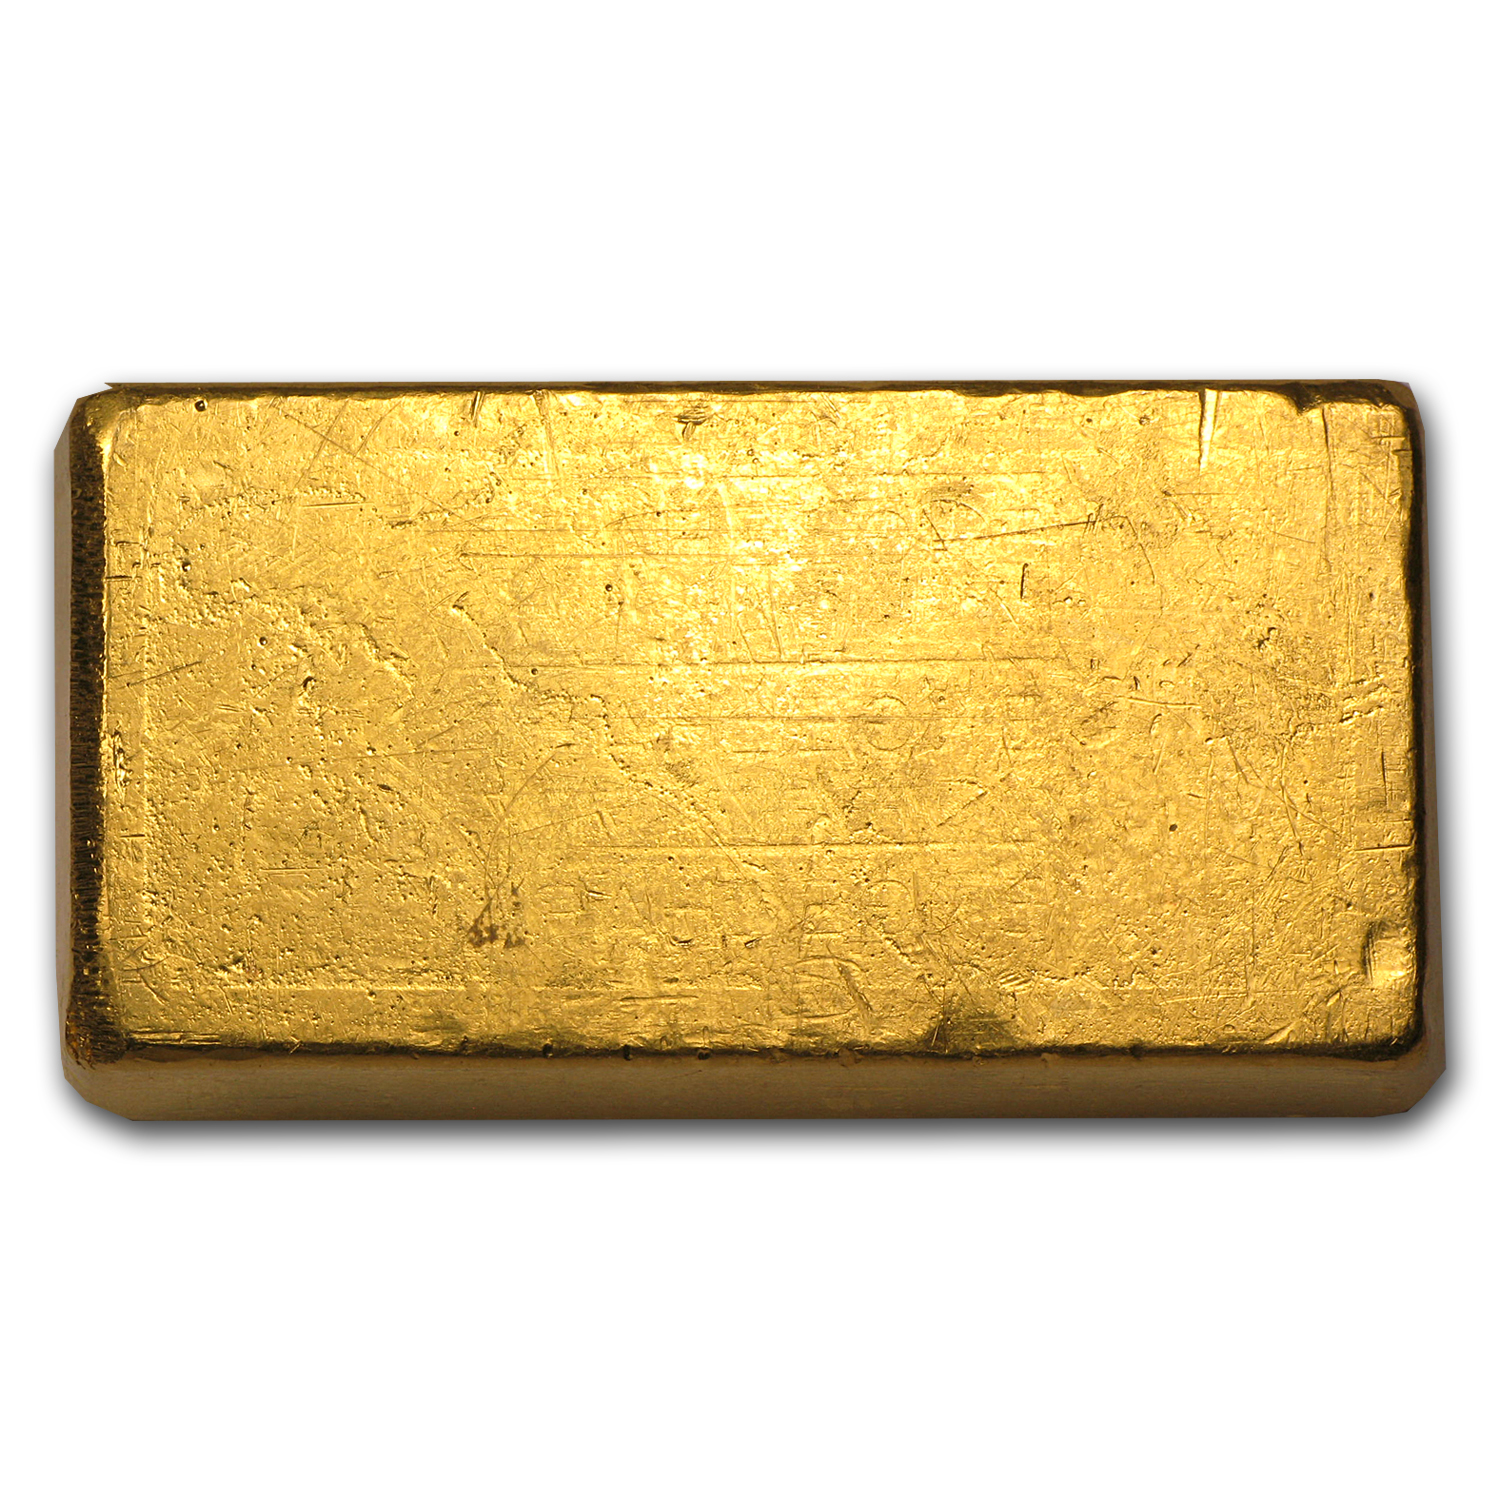 10 oz Gold Bar - Engelhard (Poured, Loaf-Style)